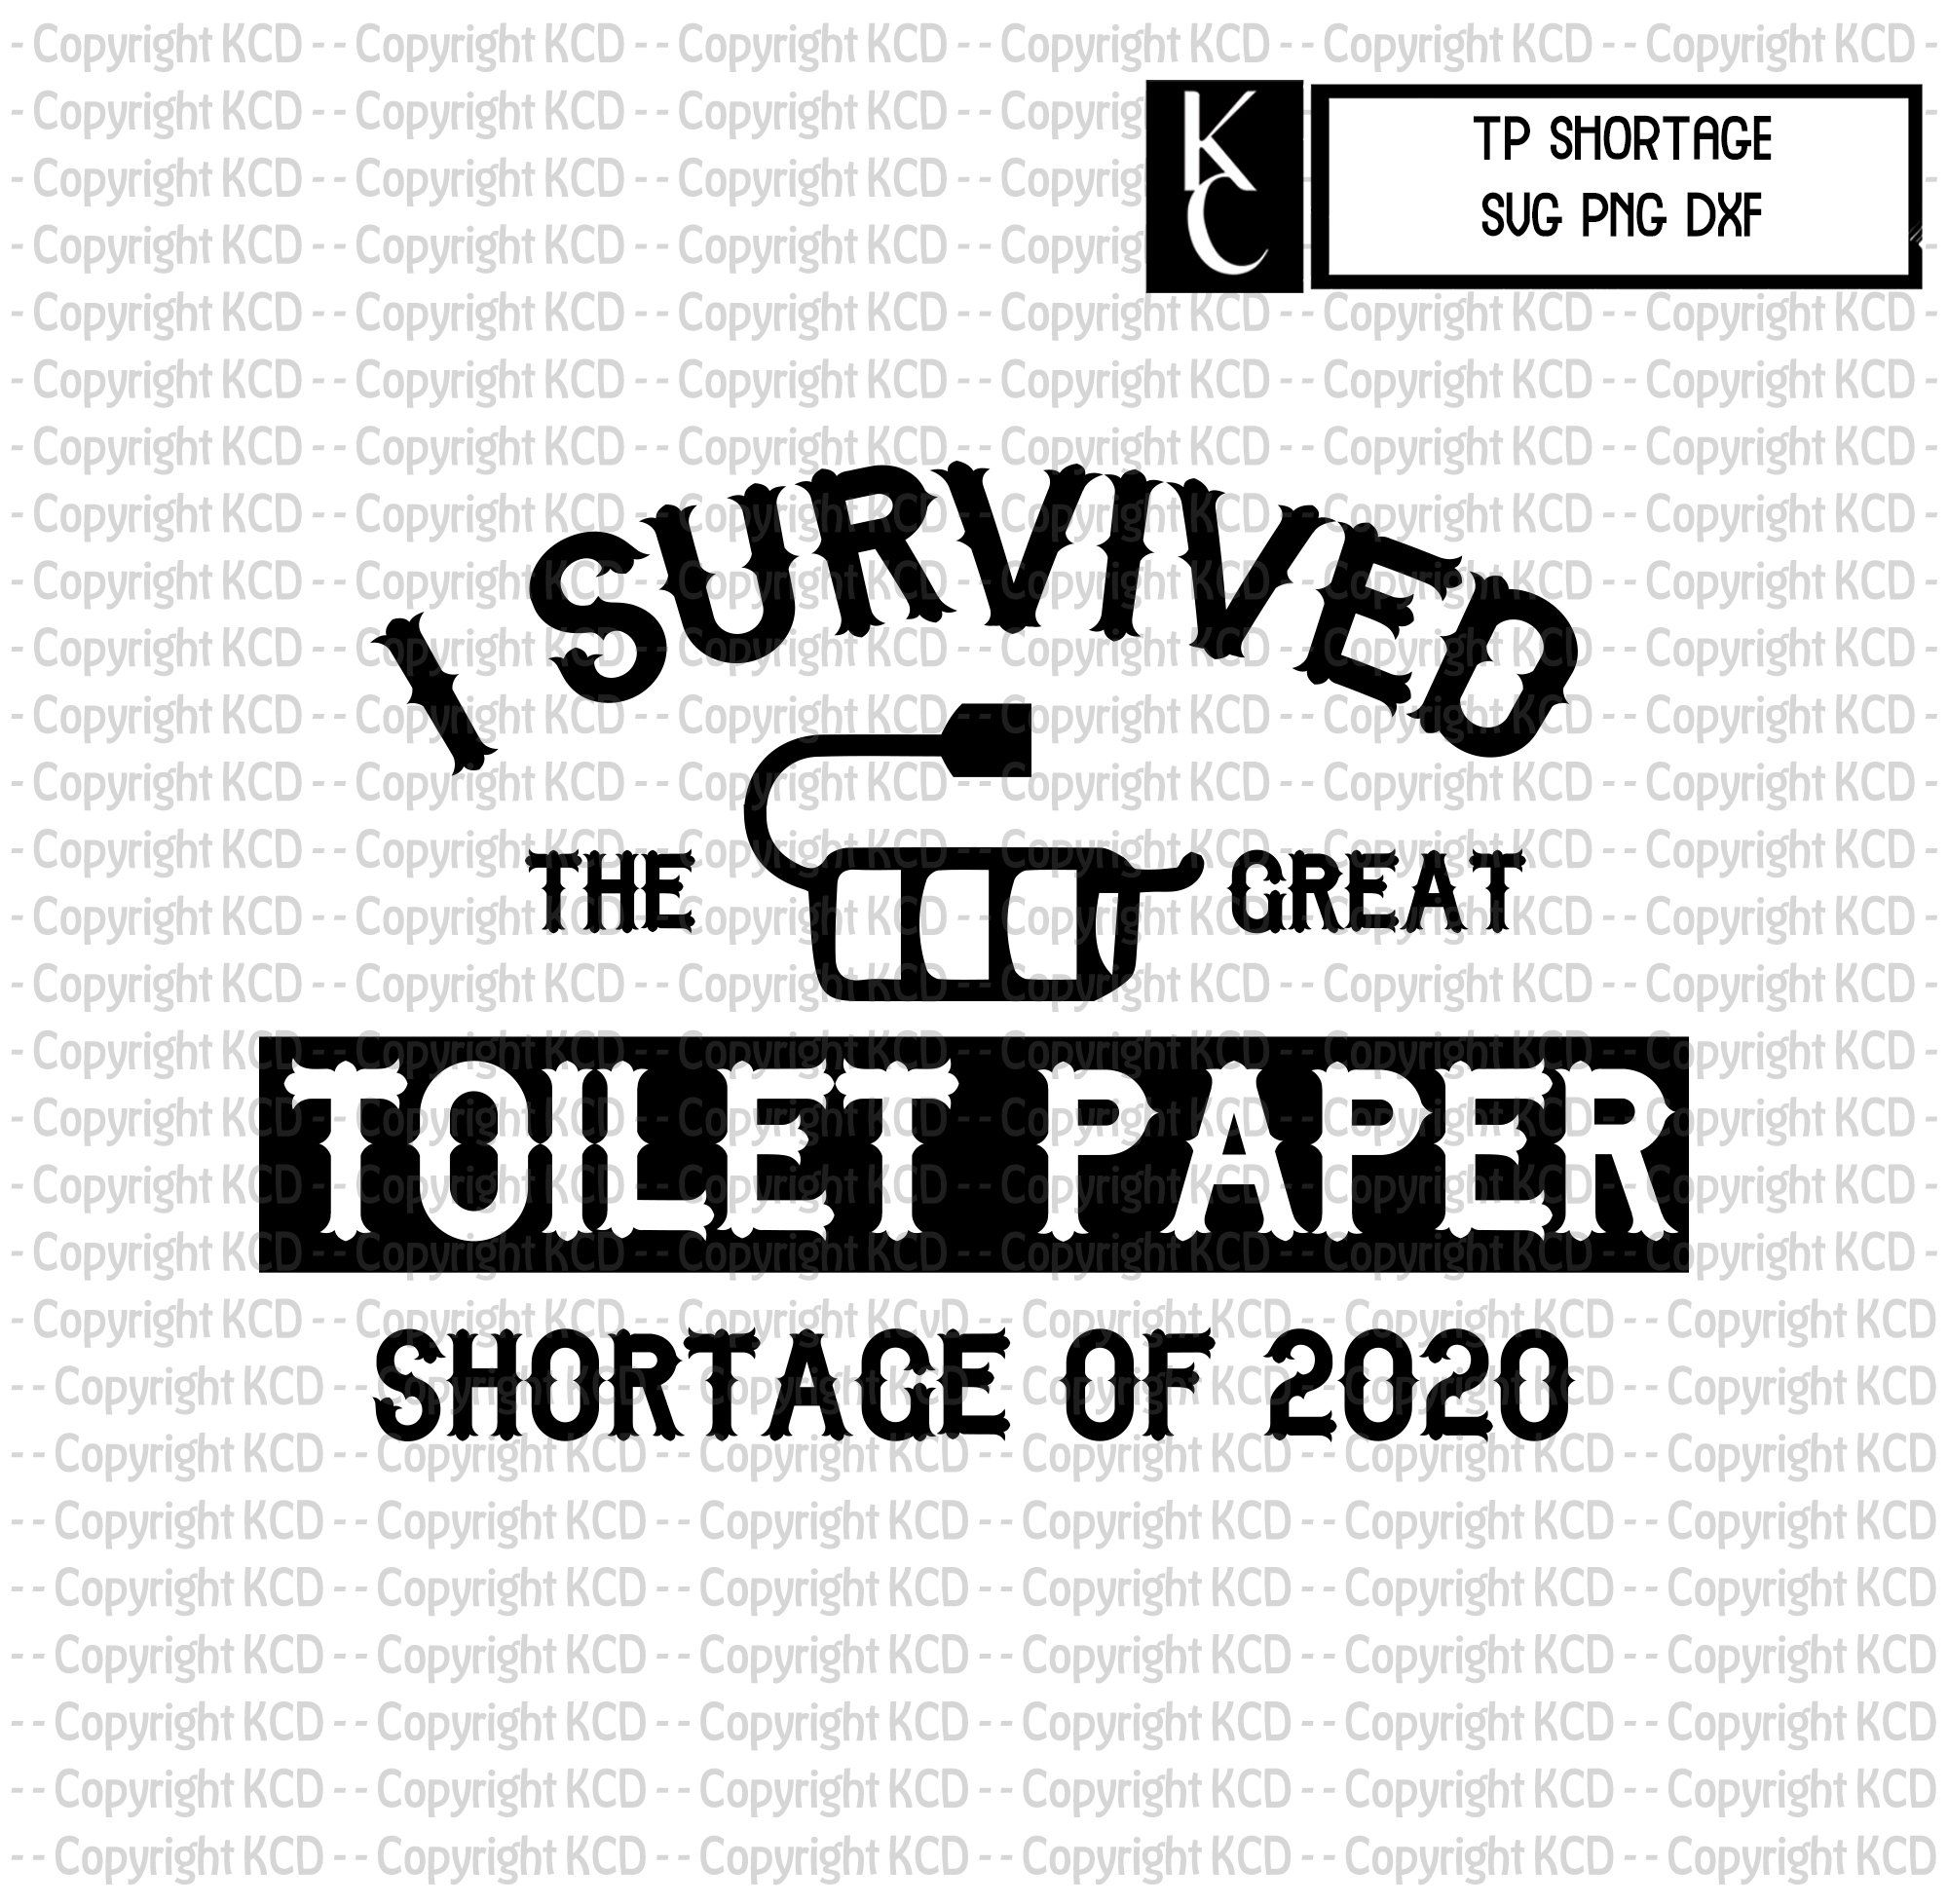 Toilet Paper Shotage 2020 SVG Funny Shirt Design outage